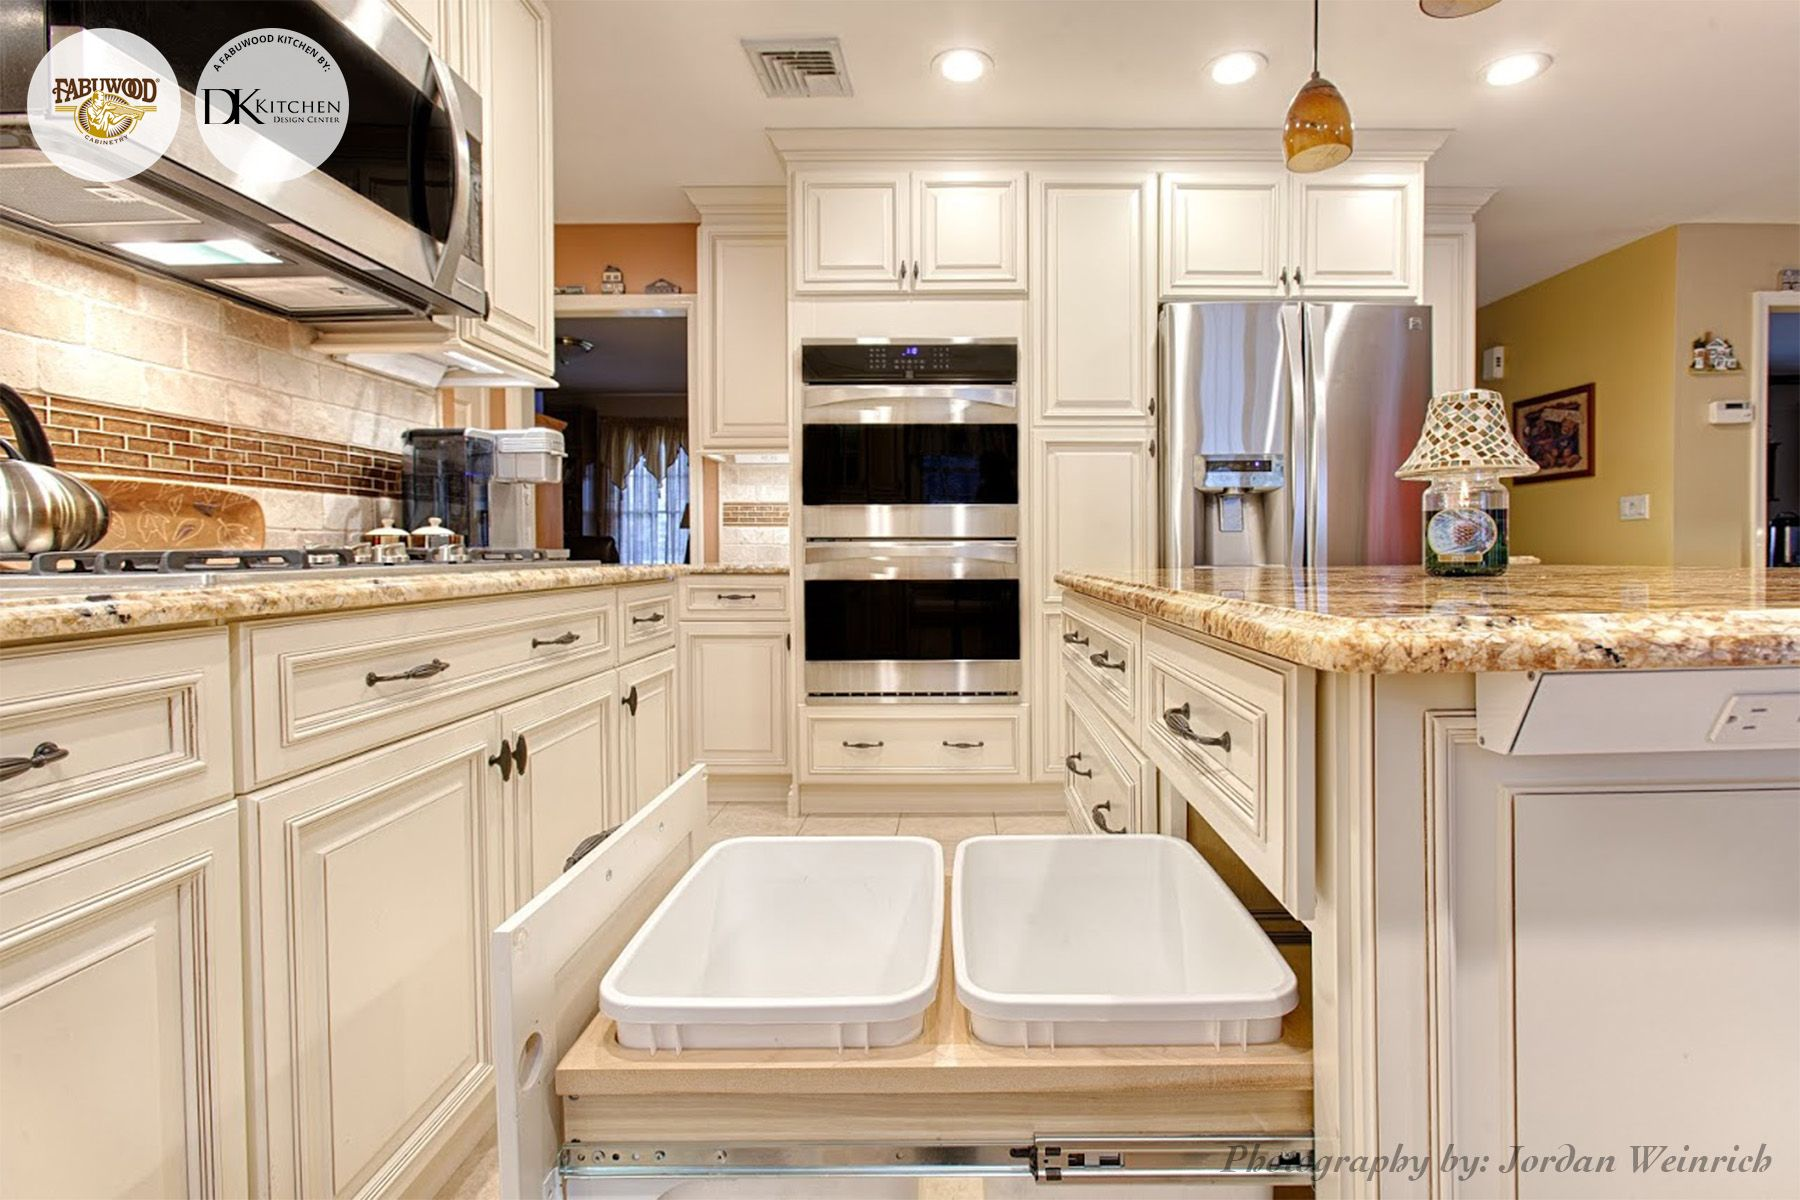 this beautiful fabuwood nexus frost kitchen was built by bender